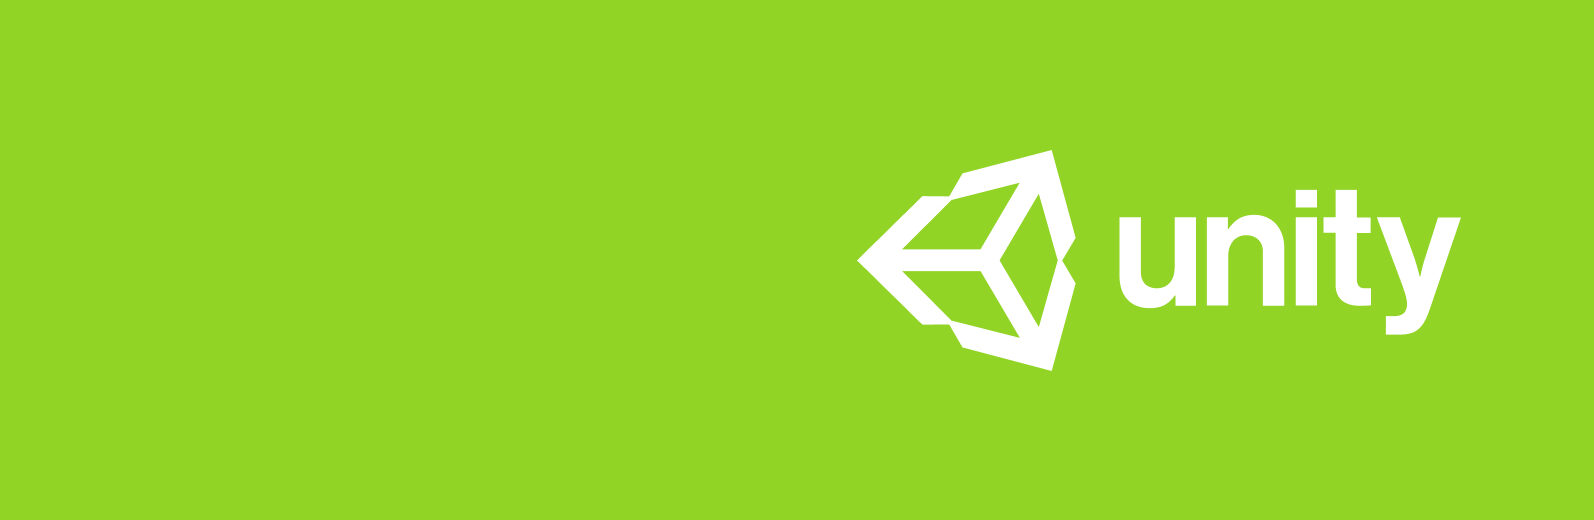 Unity – A Universal Game Engine For Mobile And Desktop